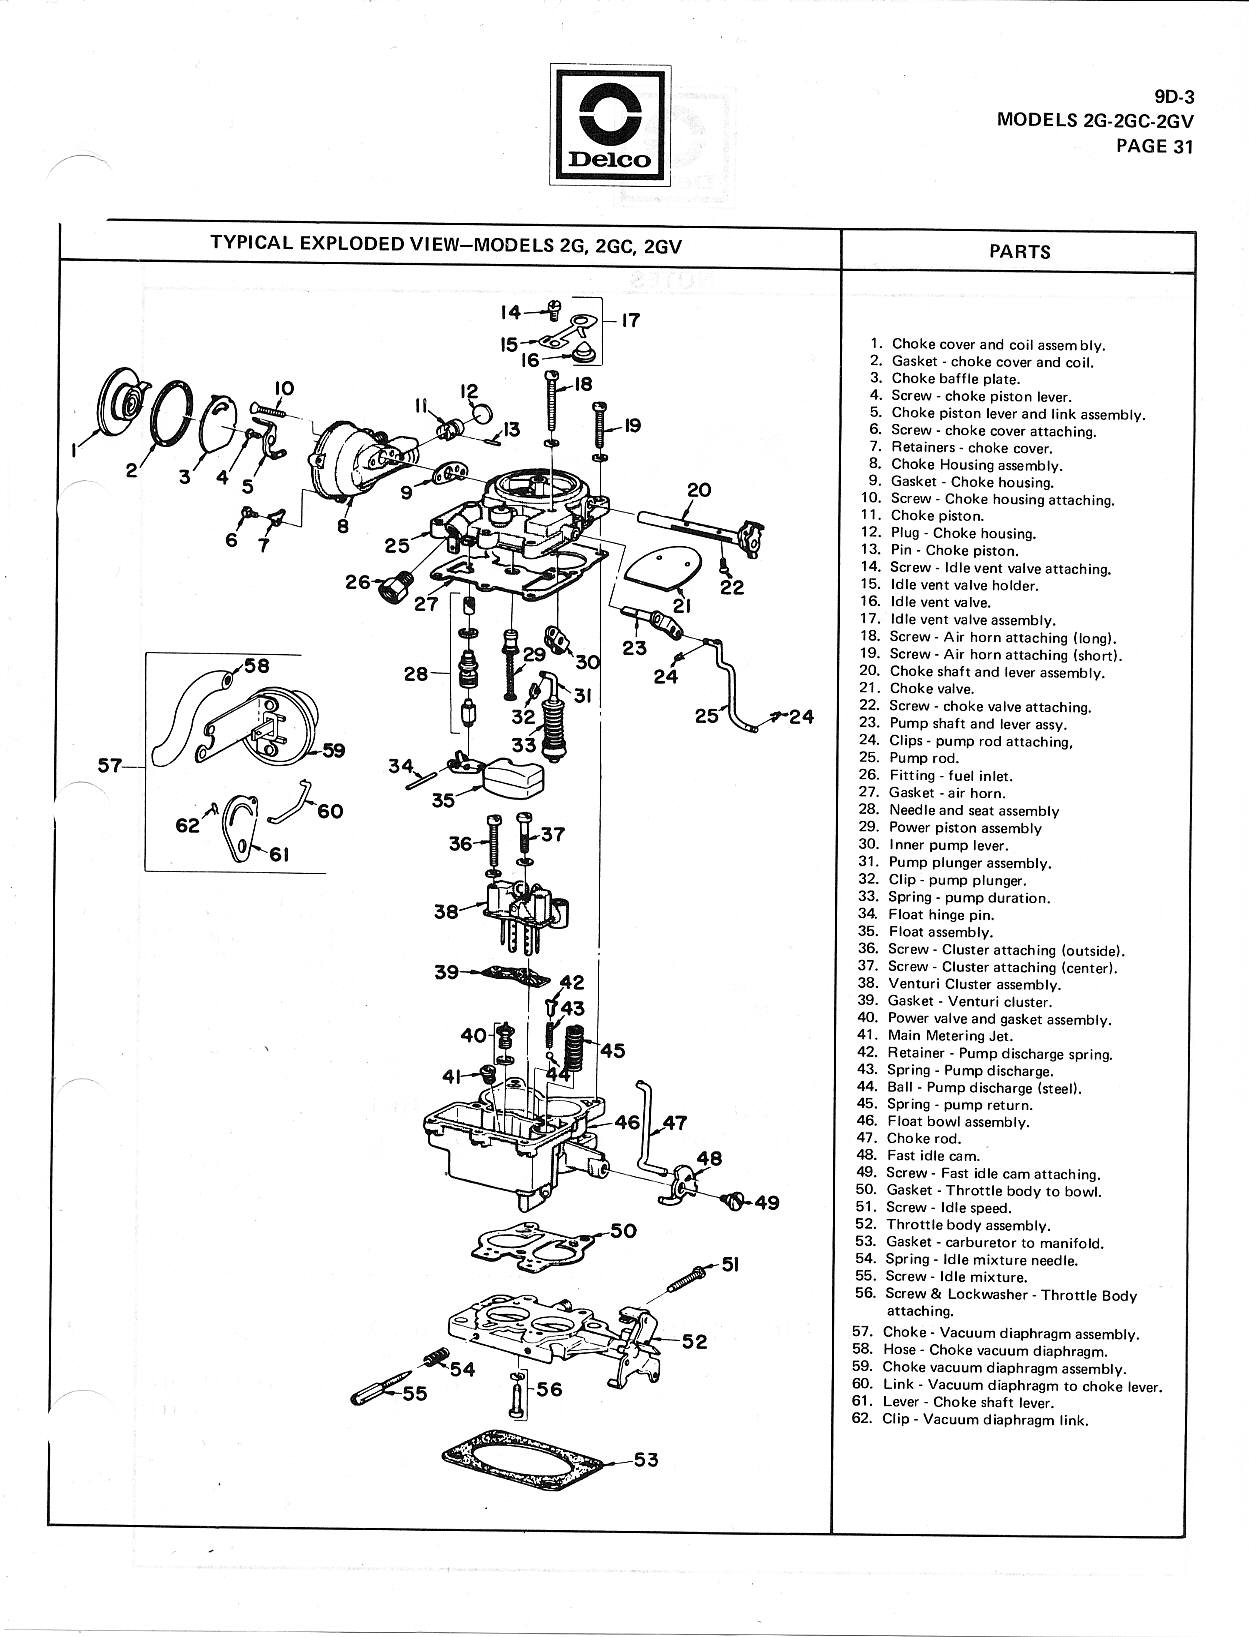 1960 johnson 75 hp wiring diagram